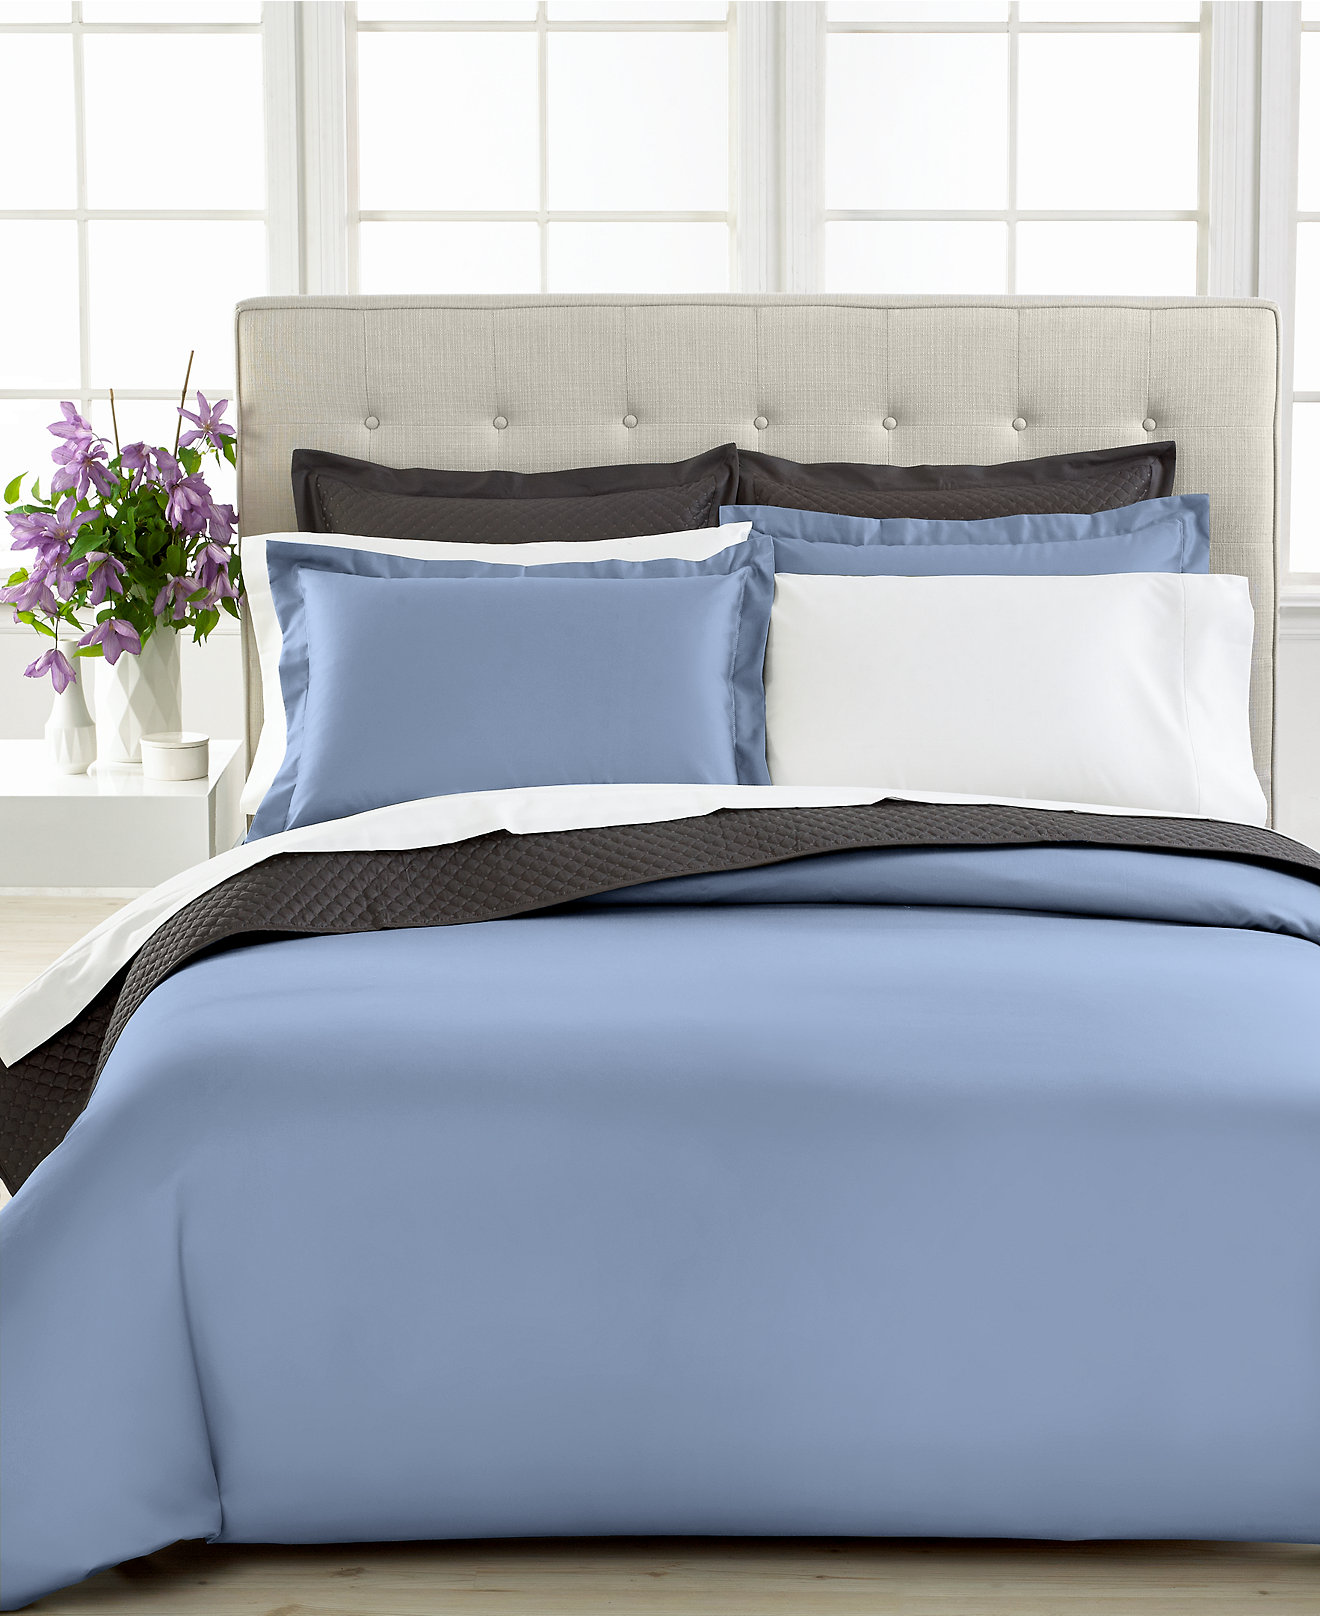 light best black design set of extra for bedroom white duvet single bedspread duvets turquois ideas charming chic turquoise king sets coral blue linen clearance with comforter size full and teal twin cover grey purple long solid cute bedding navy queen gray aqua